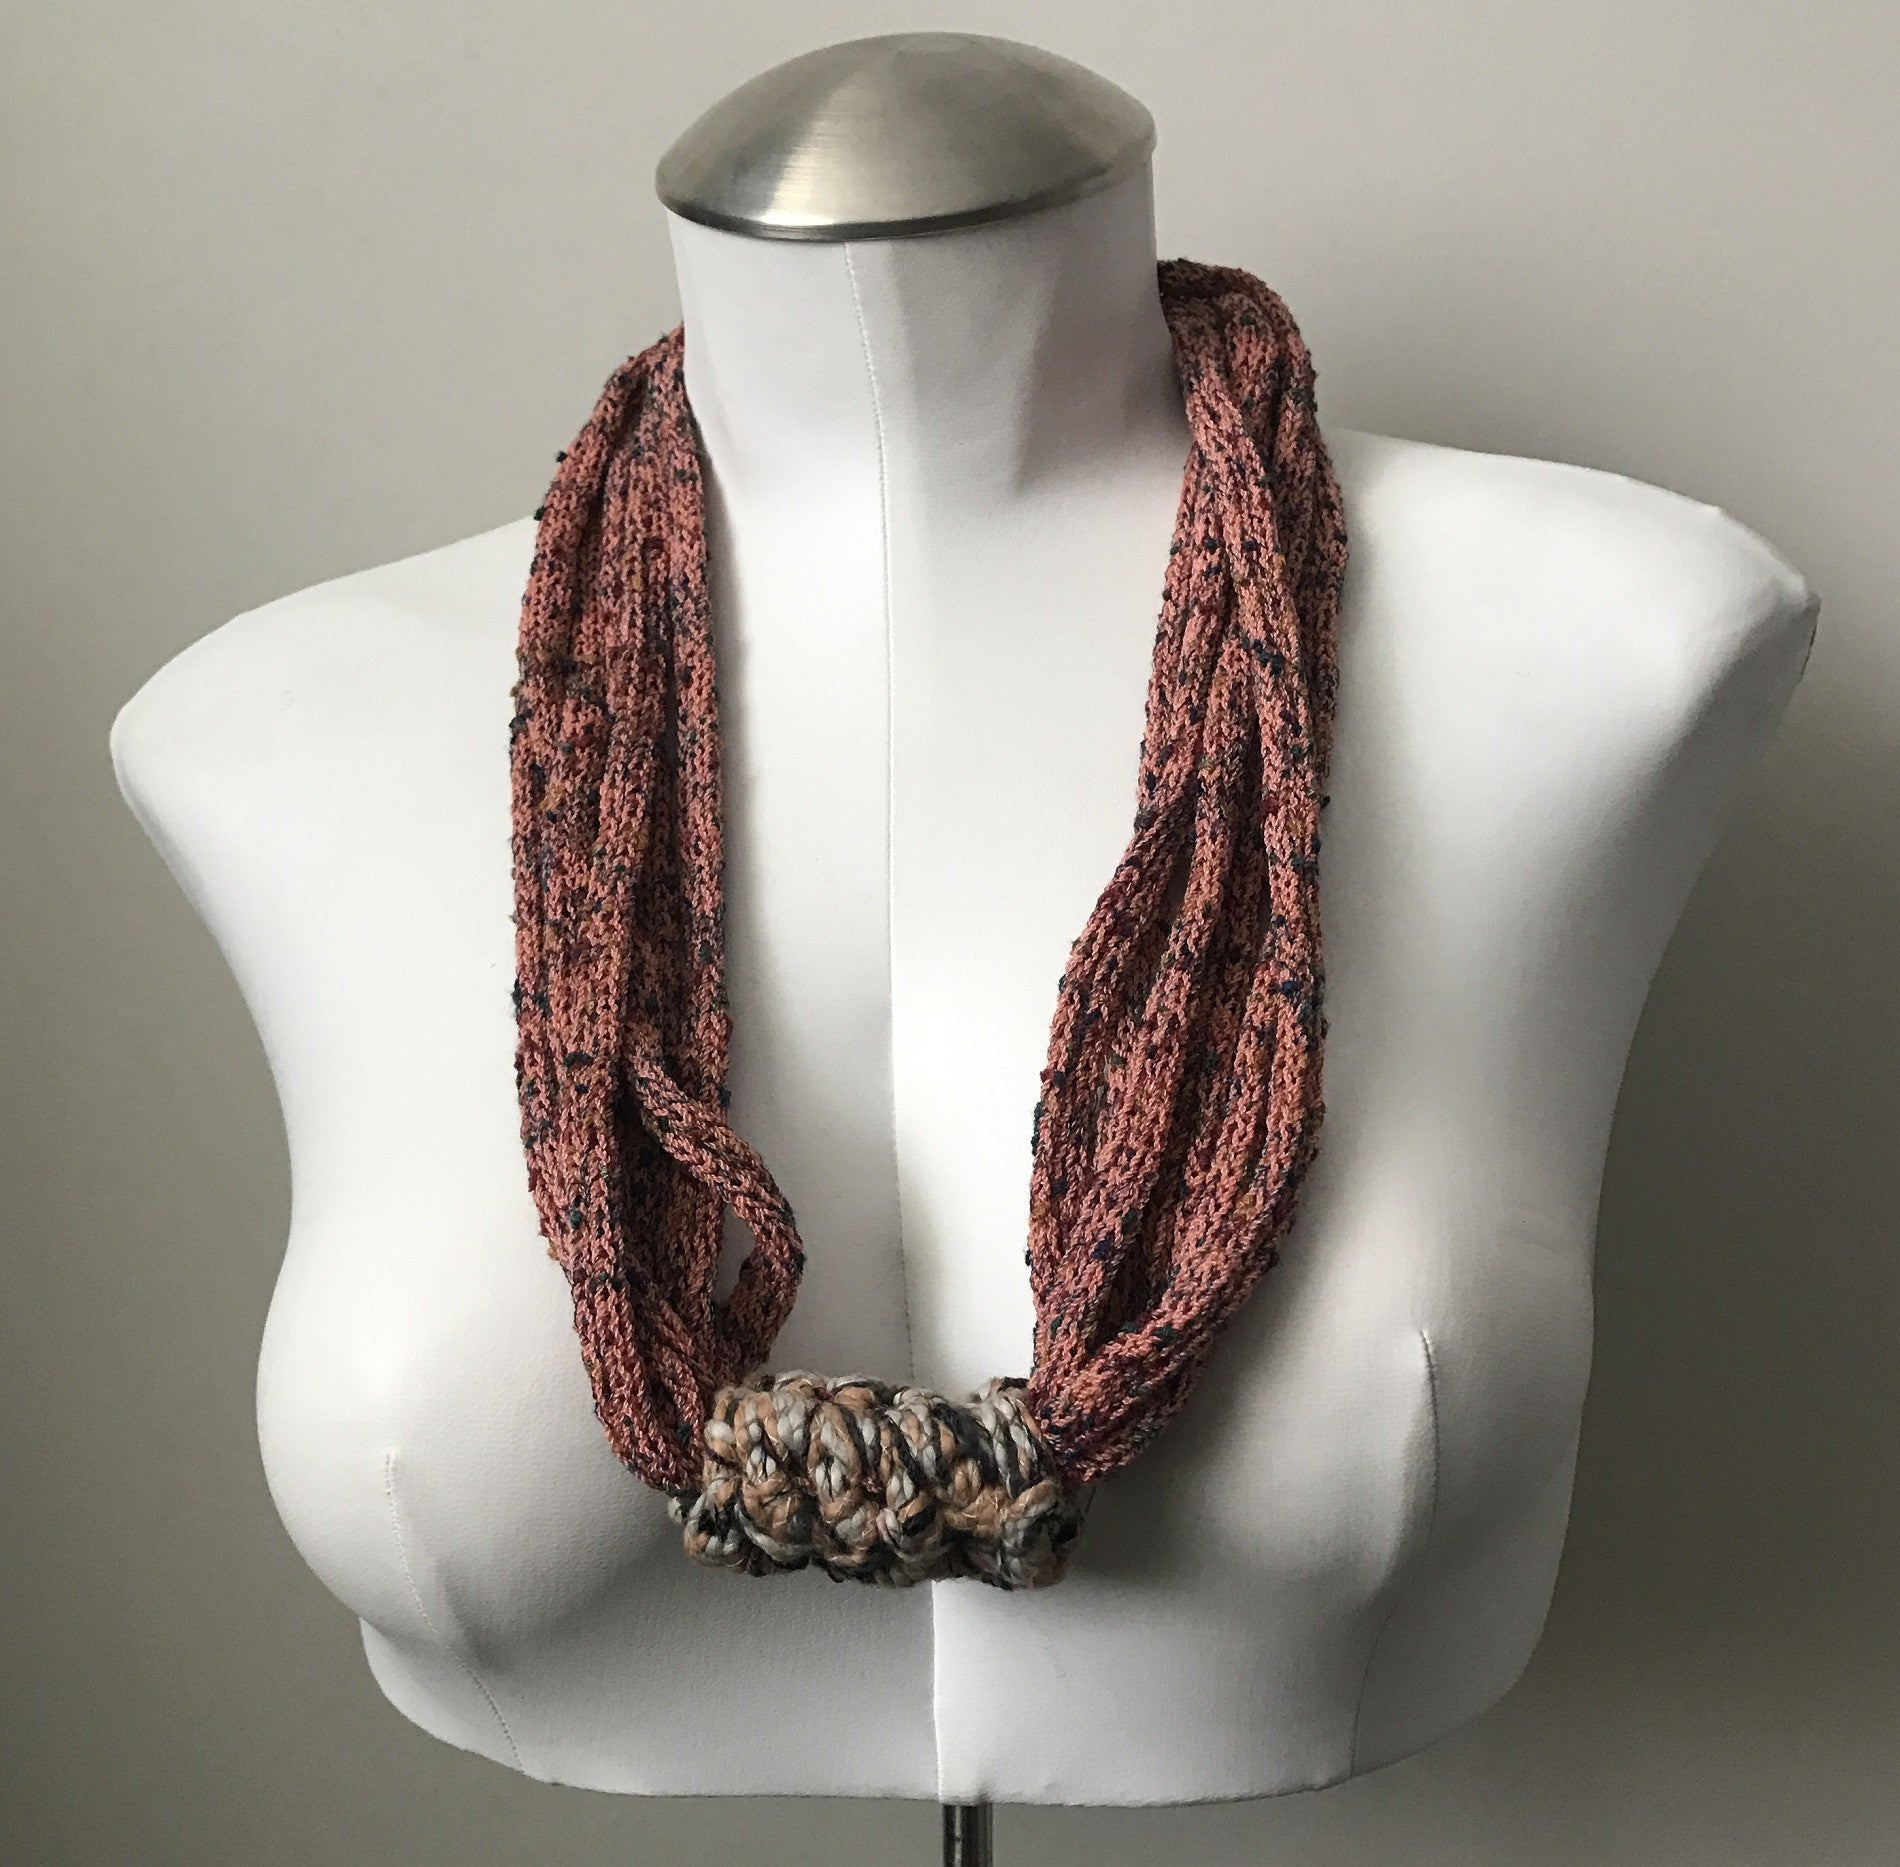 Peachy Orange Tweed Fiber Necklace (FN03)